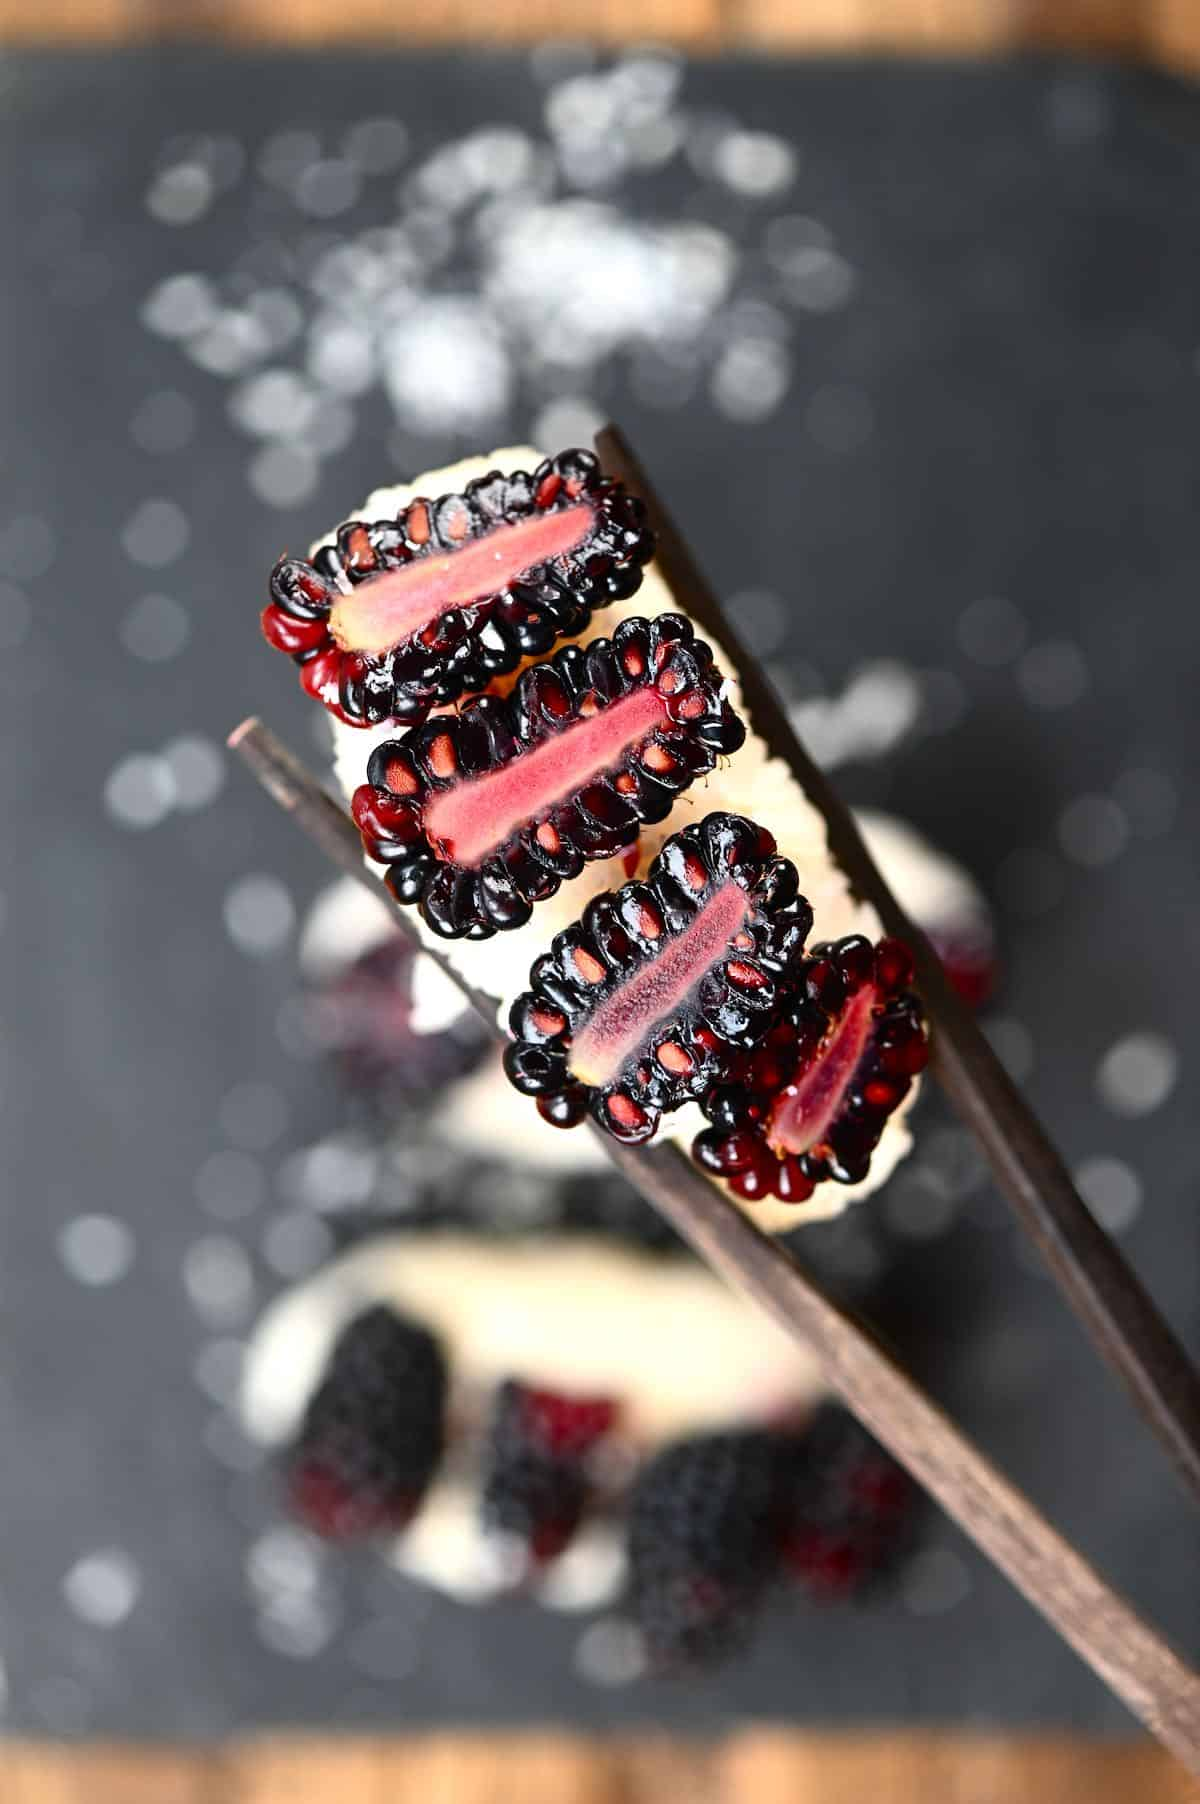 closeup of blackberry sushi